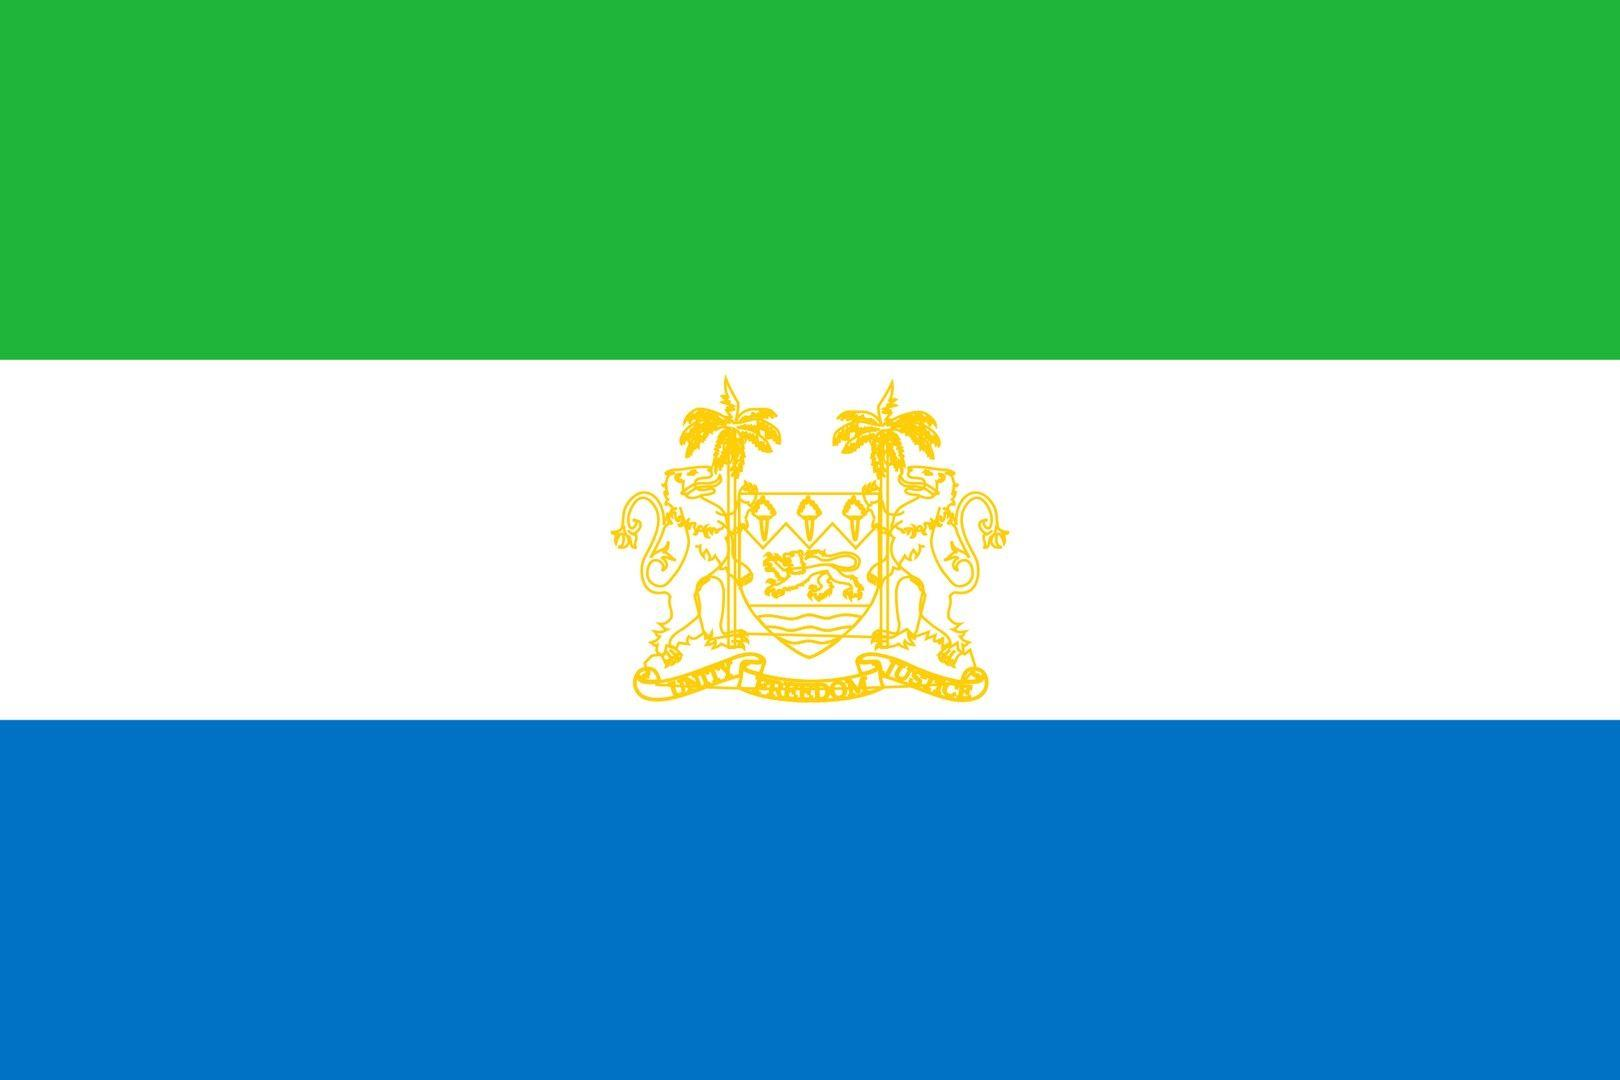 Sierra Leone flag wallpaper | Flags wallpaper | Pinterest | Sierra ...